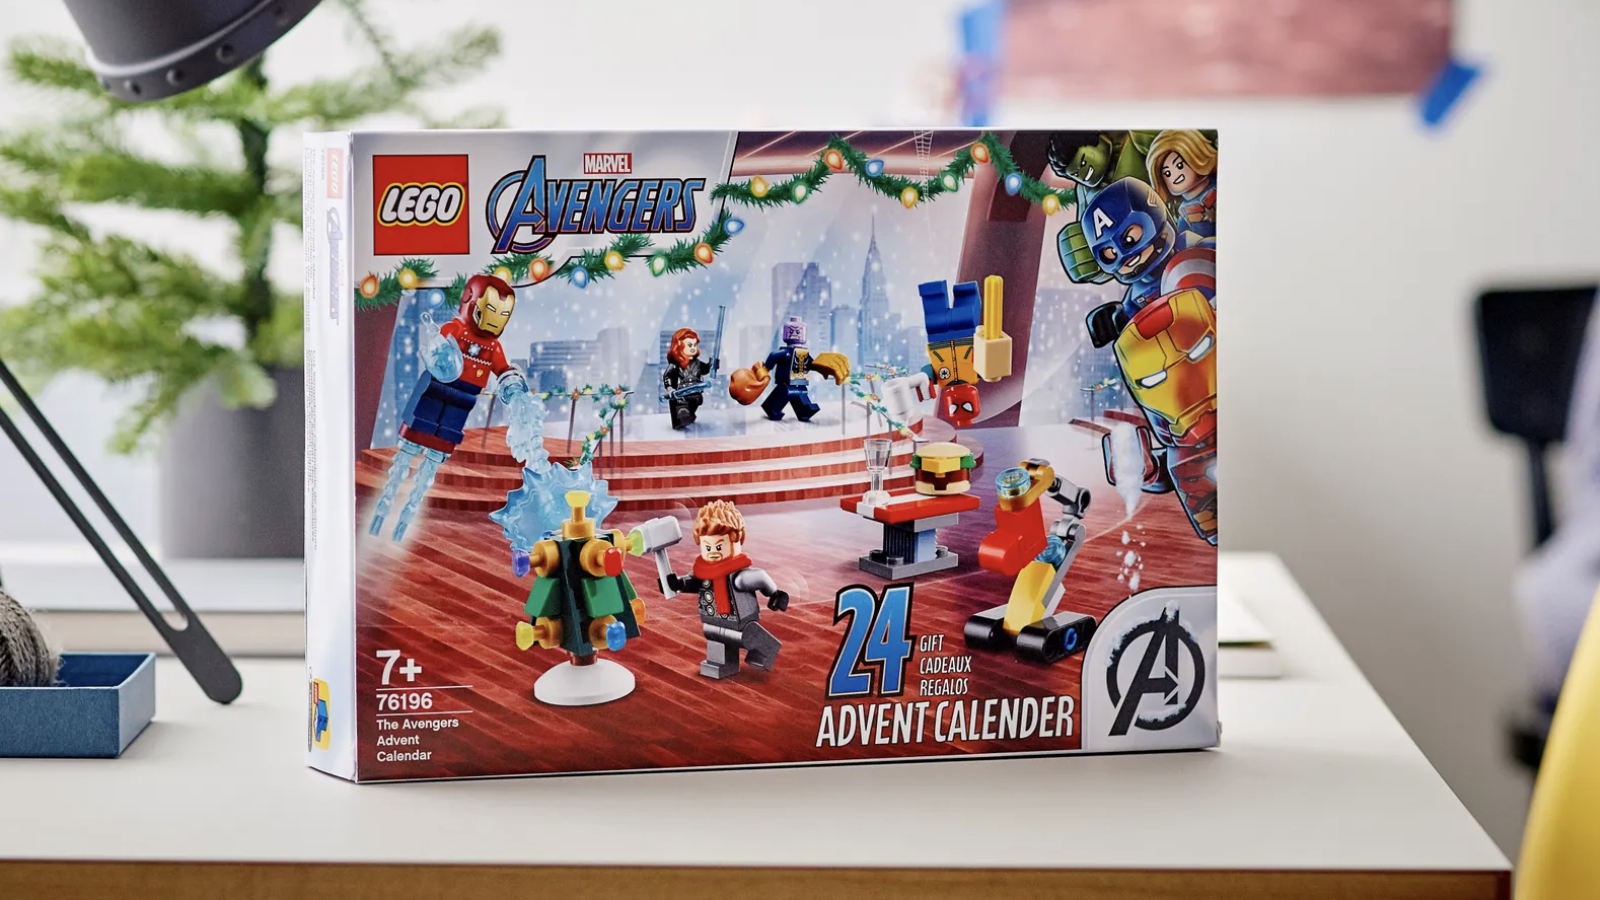 Lego released a Marvel Avengers Advent calendar—here's where to buy it